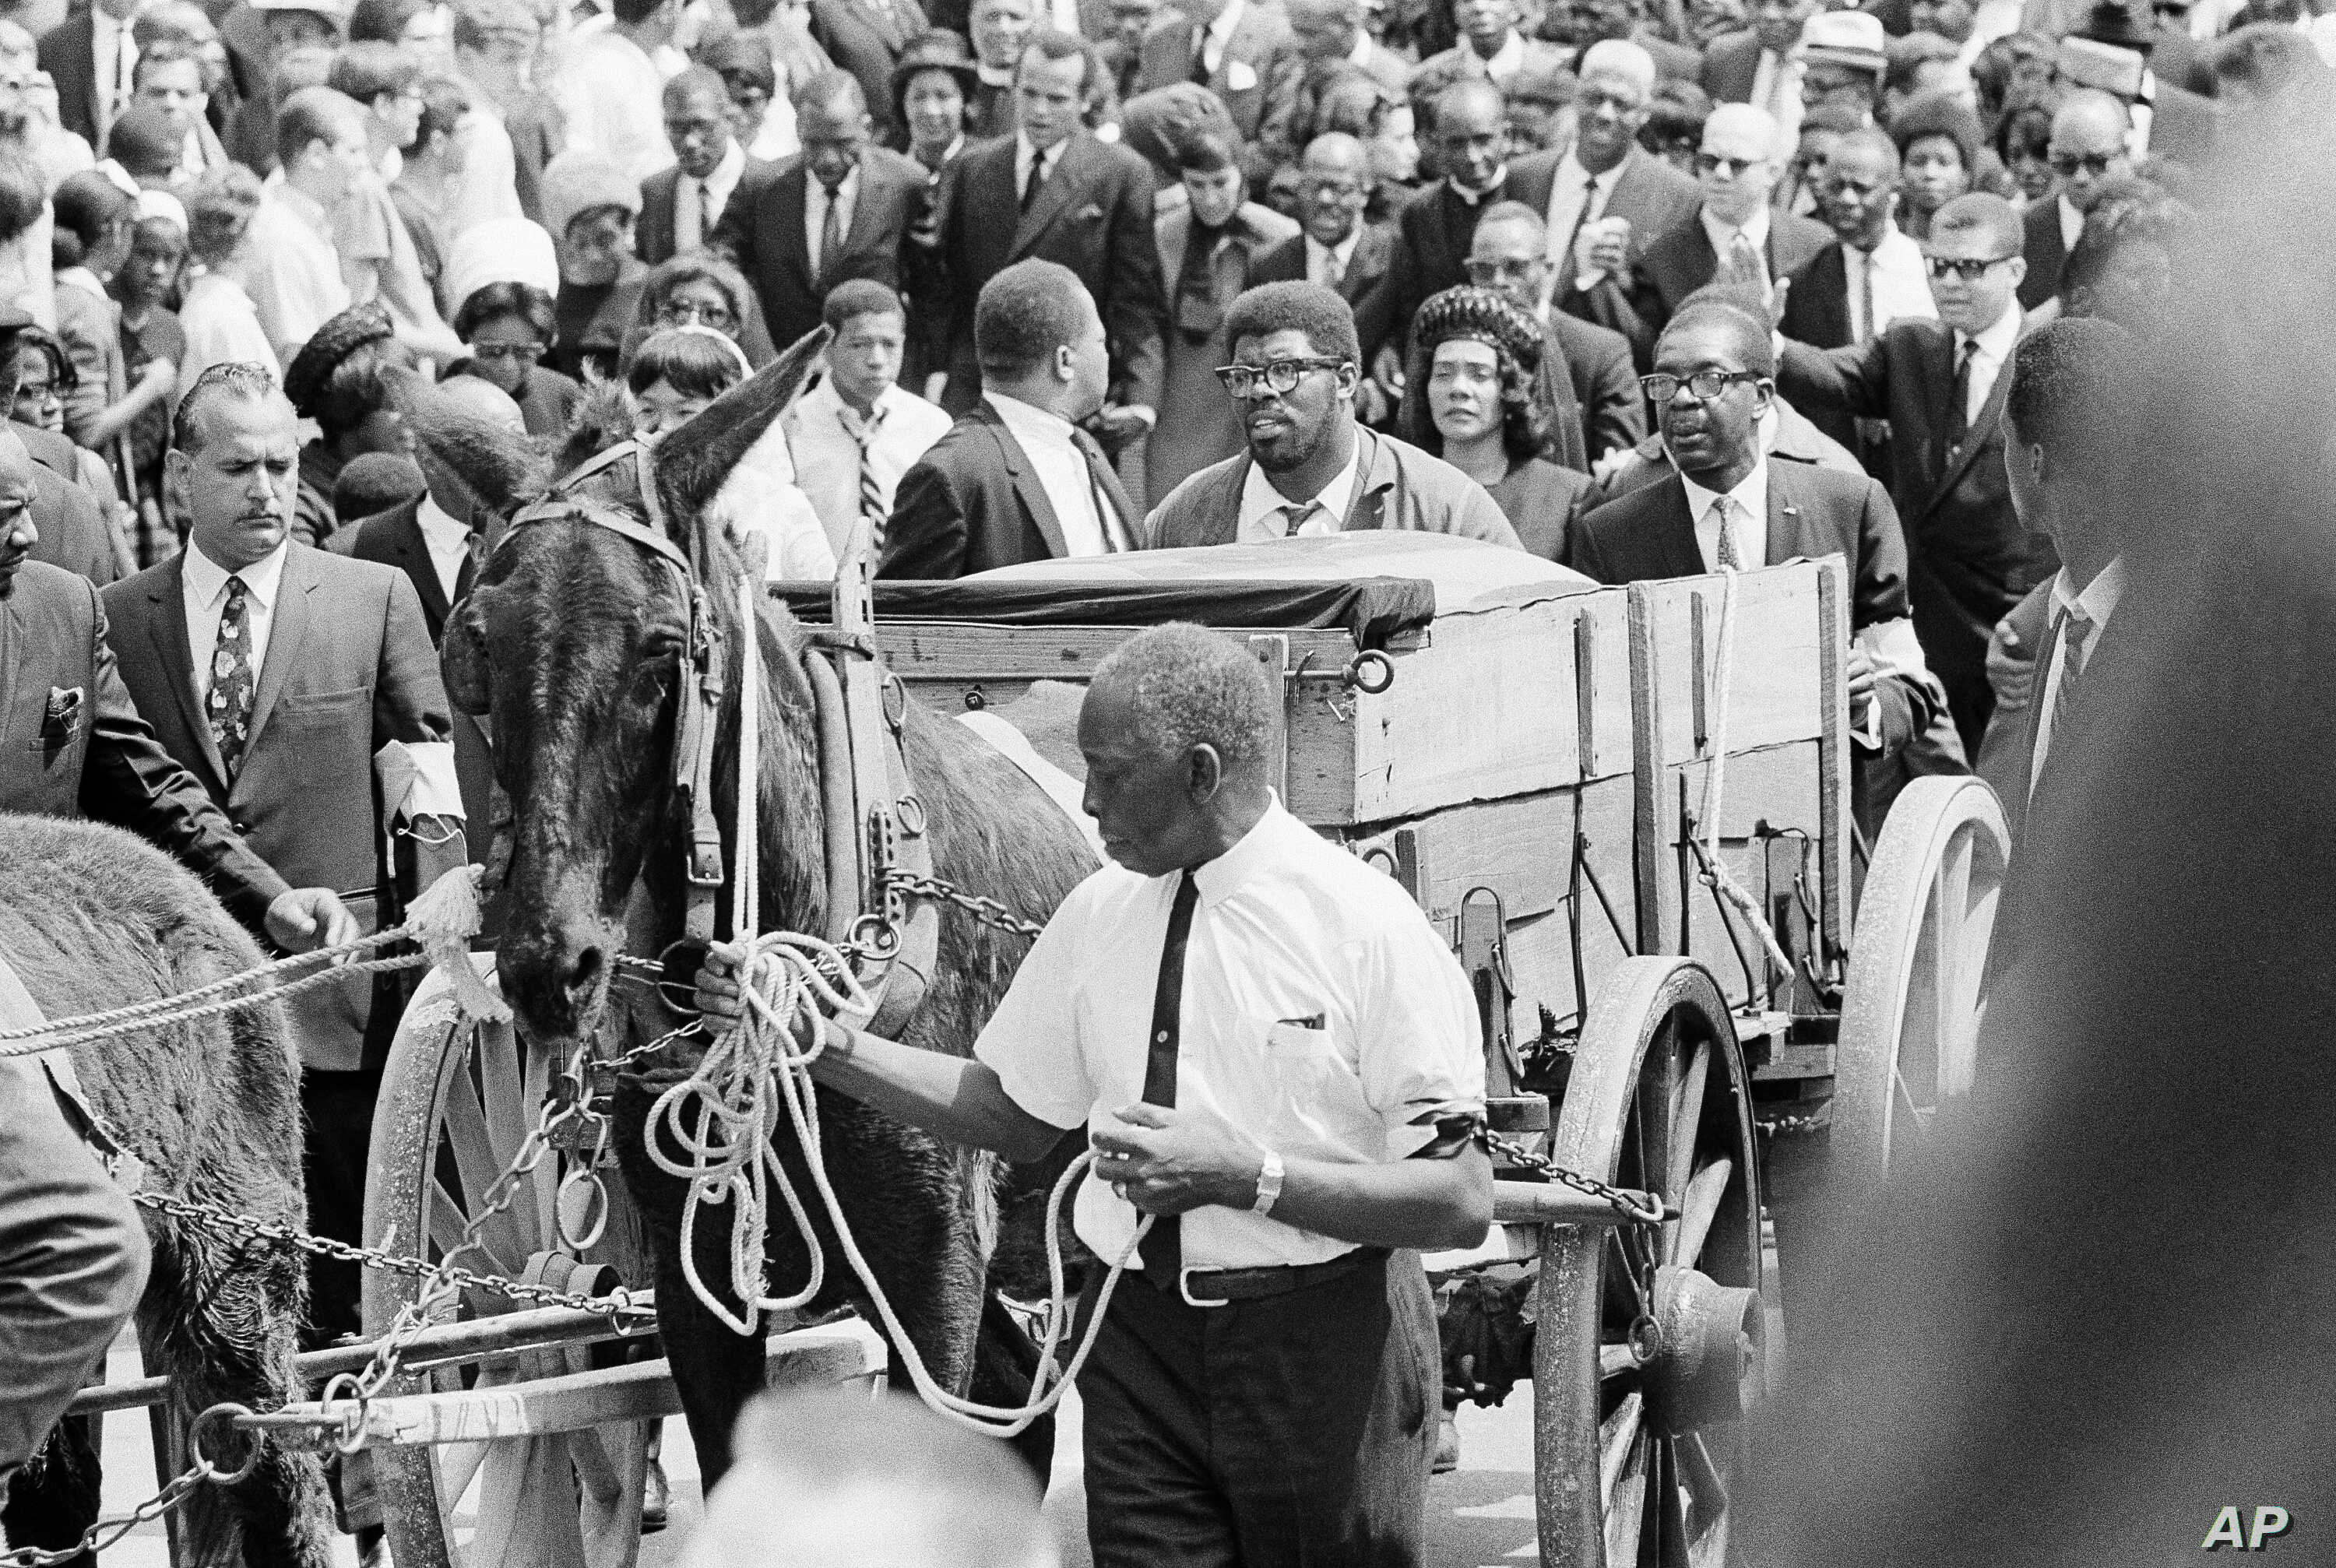 FILE - A mule cart carries Martin Luther King Jr.'s mahogany casket through the streets of Atlanta, April 10, 1968, en route to funeral services at Morehouse College.